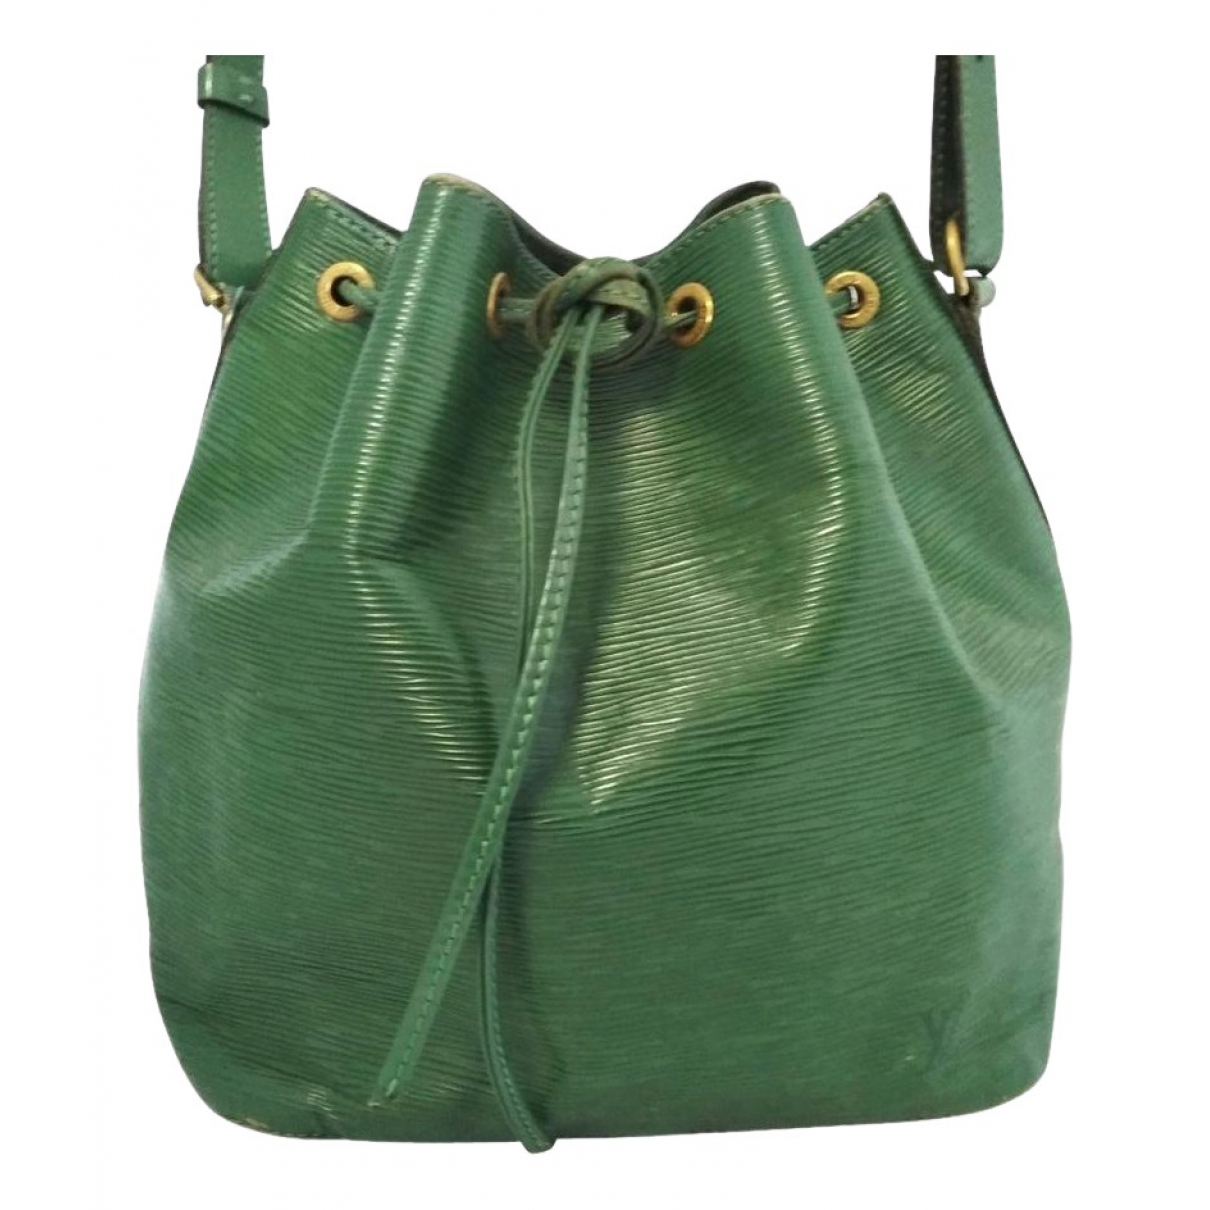 Louis Vuitton Noé Green Leather handbag for Women N